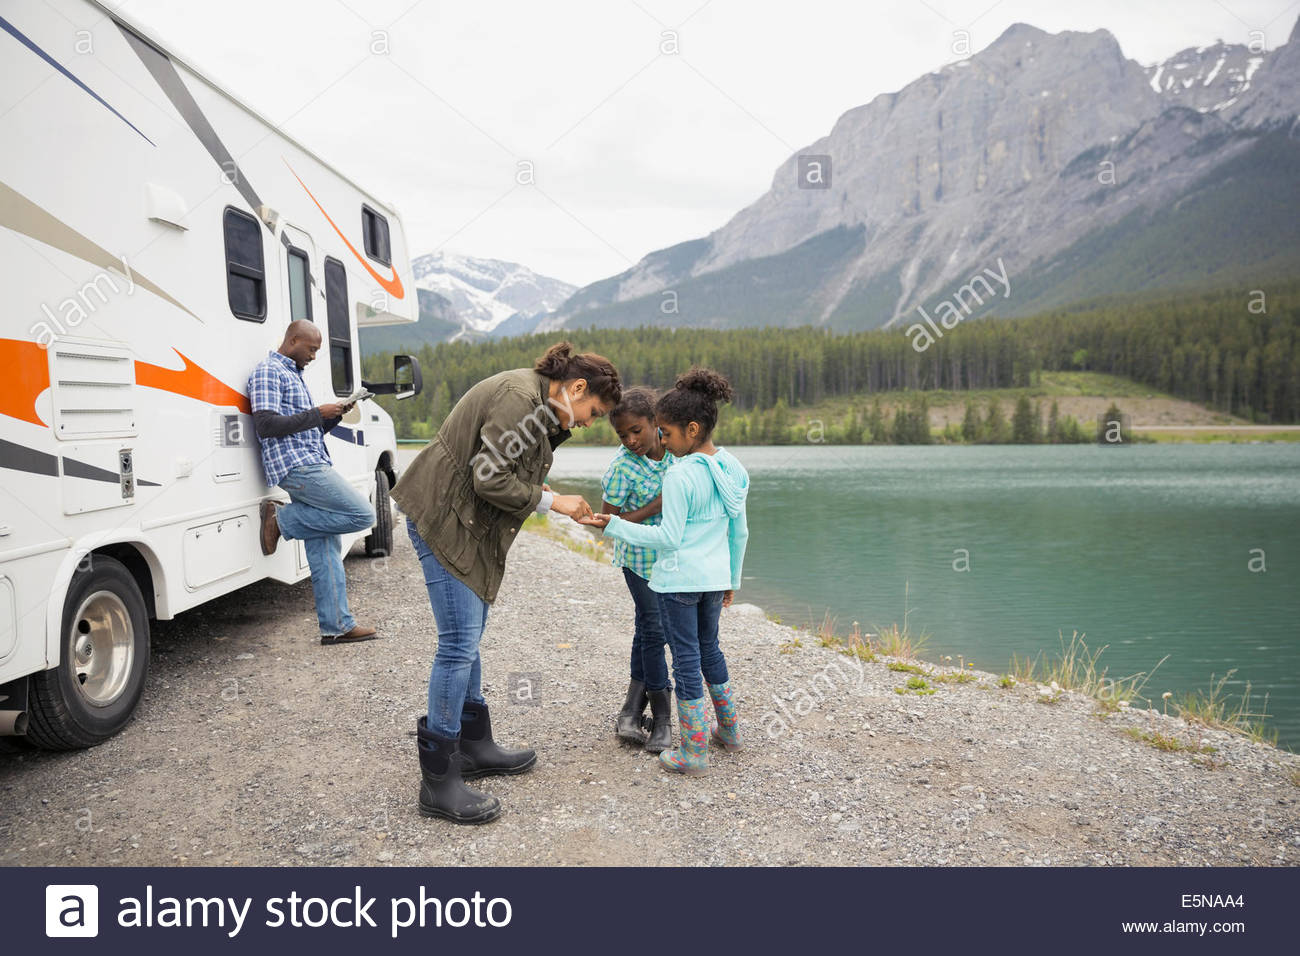 Family standing at lakeside près de RV Photo Stock